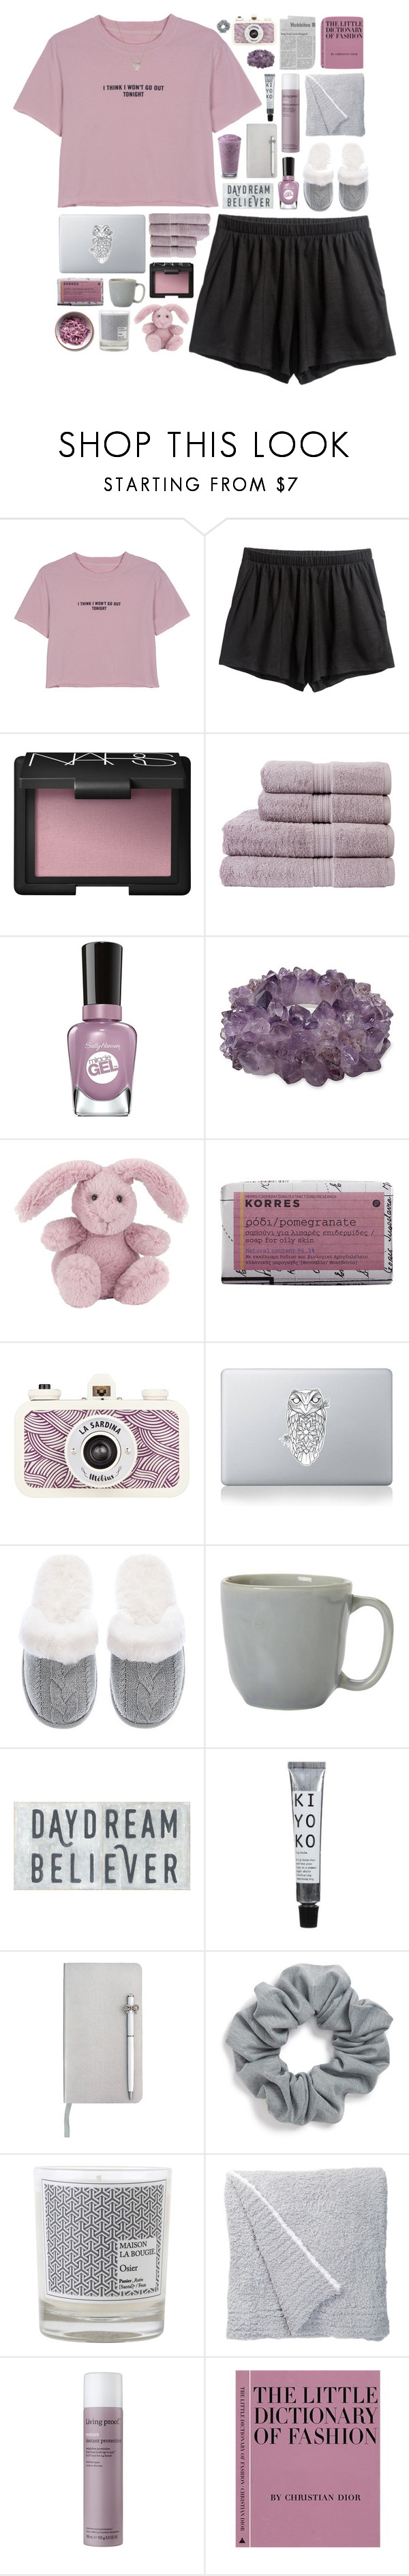 """""""Night Owl"""" by vip-beauty ❤ liked on Polyvore featuring WithChic, NARS Cosmetics, Christy, Sally Hansen, Mapleton Drive, Jellycat, Korres, Vinyl Revolution, Victoria's Secret and Juliska"""